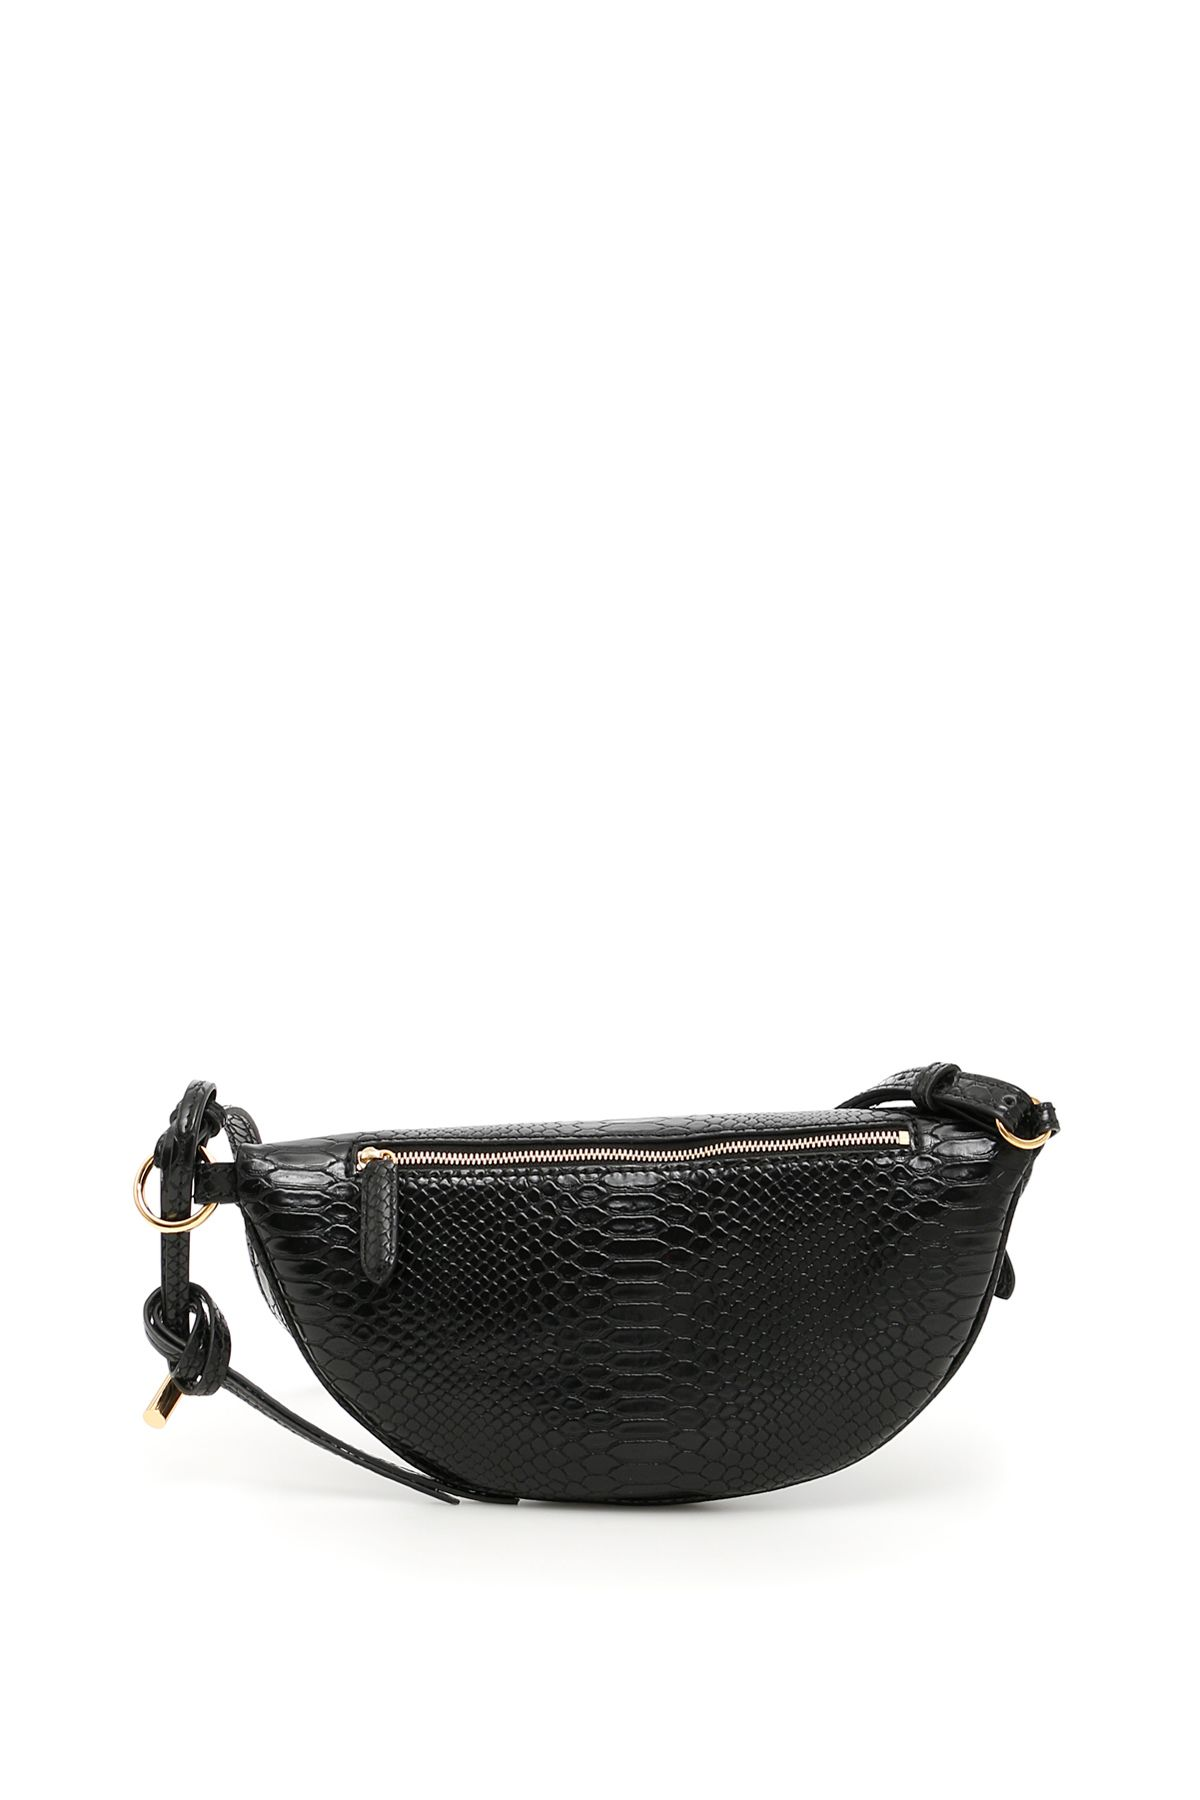 Alter Snake Small Bum Bag in Ivory Eco Leather Stella McCartney 54axacHd